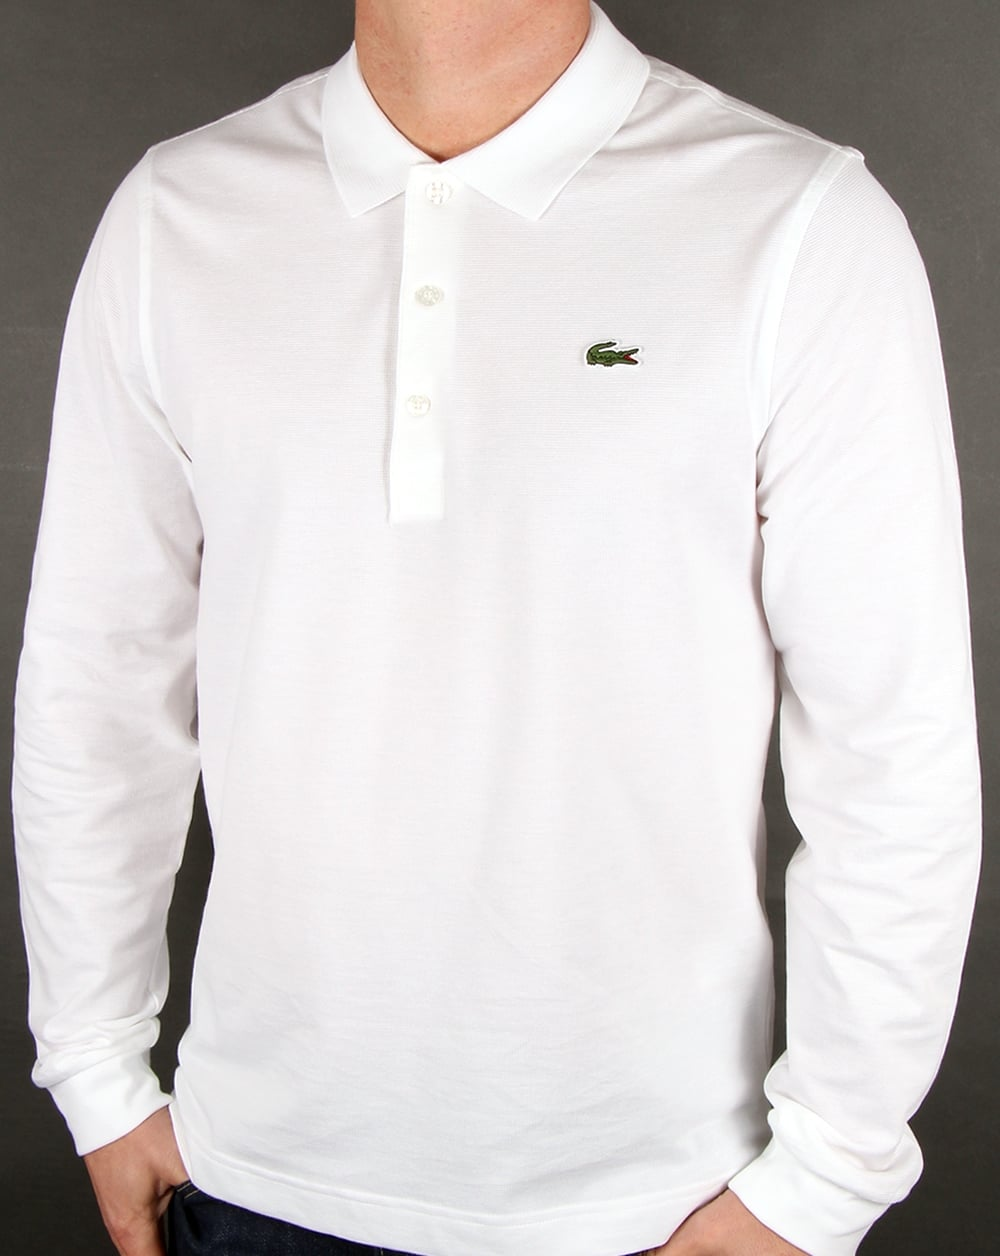 8c7d43f95 Lacoste Lacoste Long Sleeve Polo White